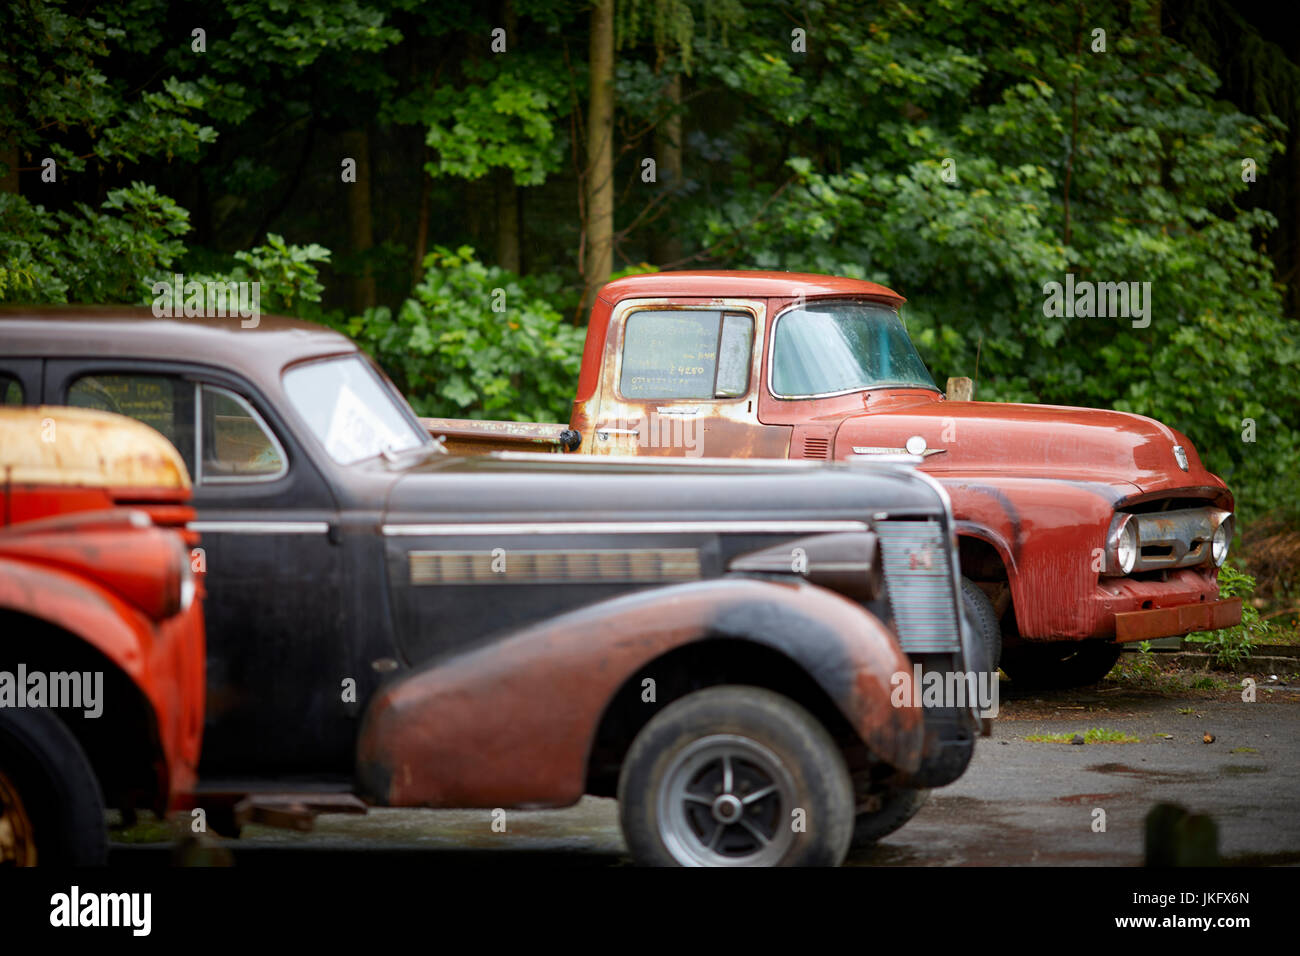 Fantastic Old Cars For Sale That Need To Be Restored Ideas ...